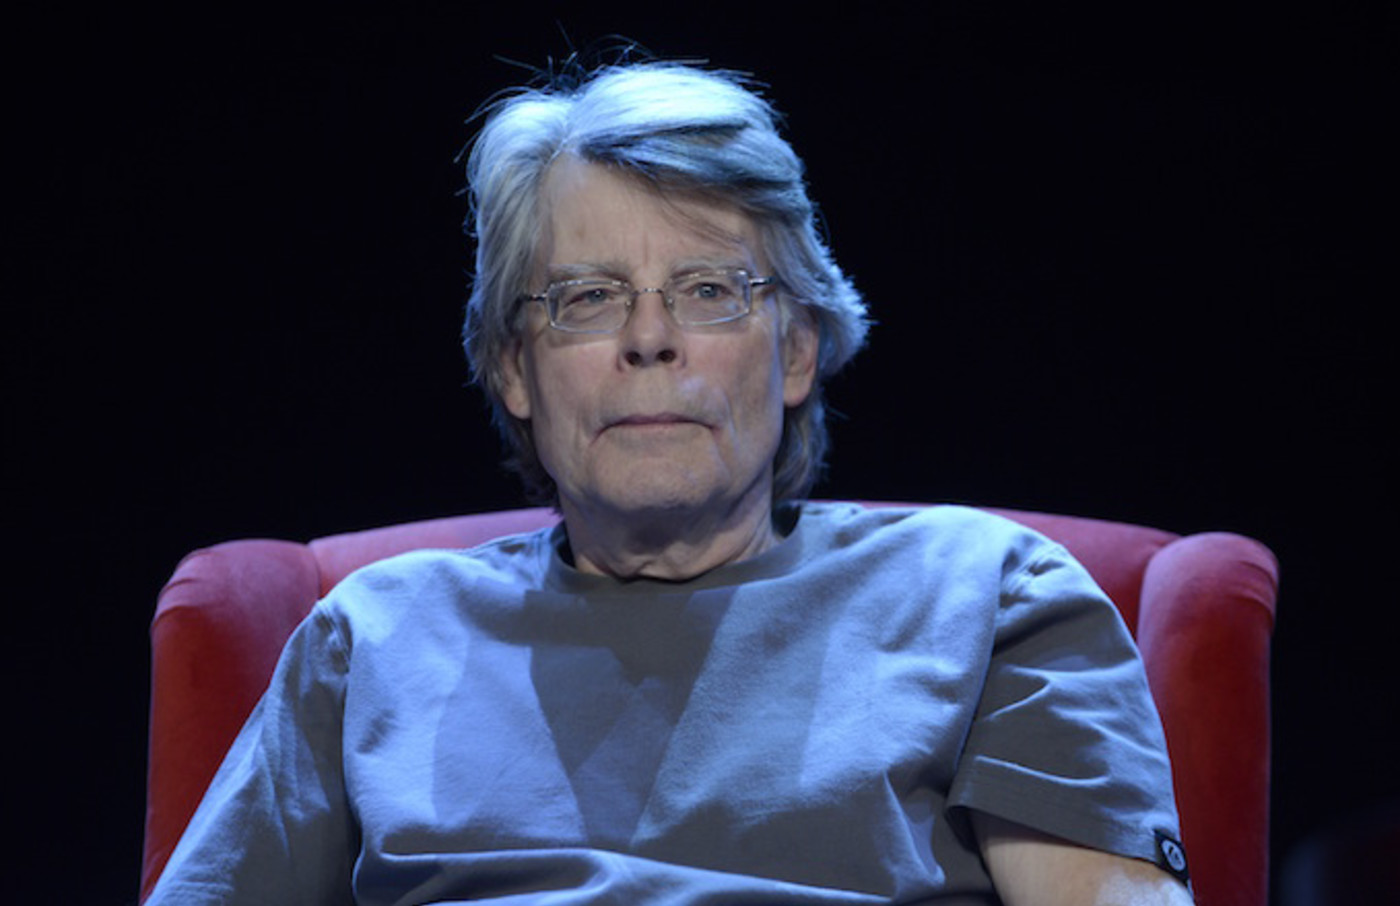 Stephen King poses during a portrait session in Paris, France.